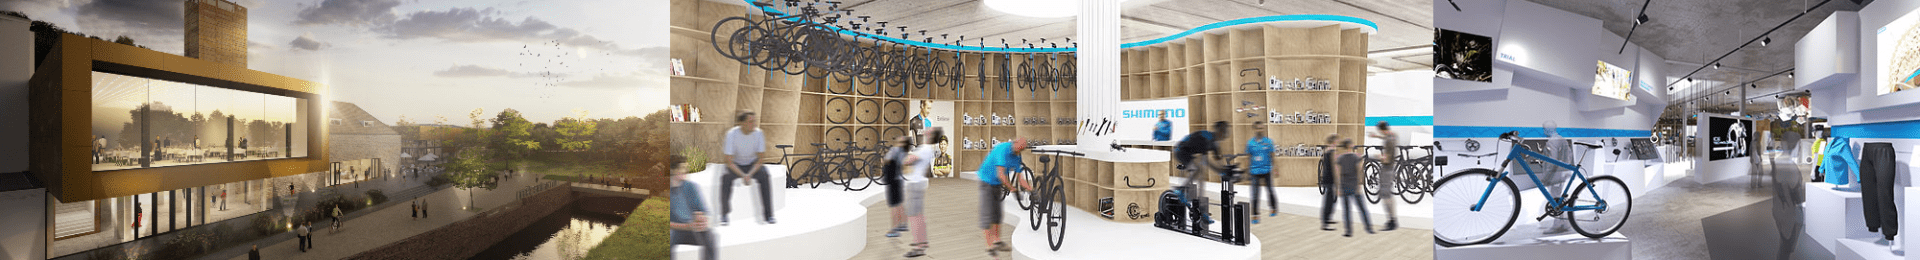 Shimano experience center Valkenburg